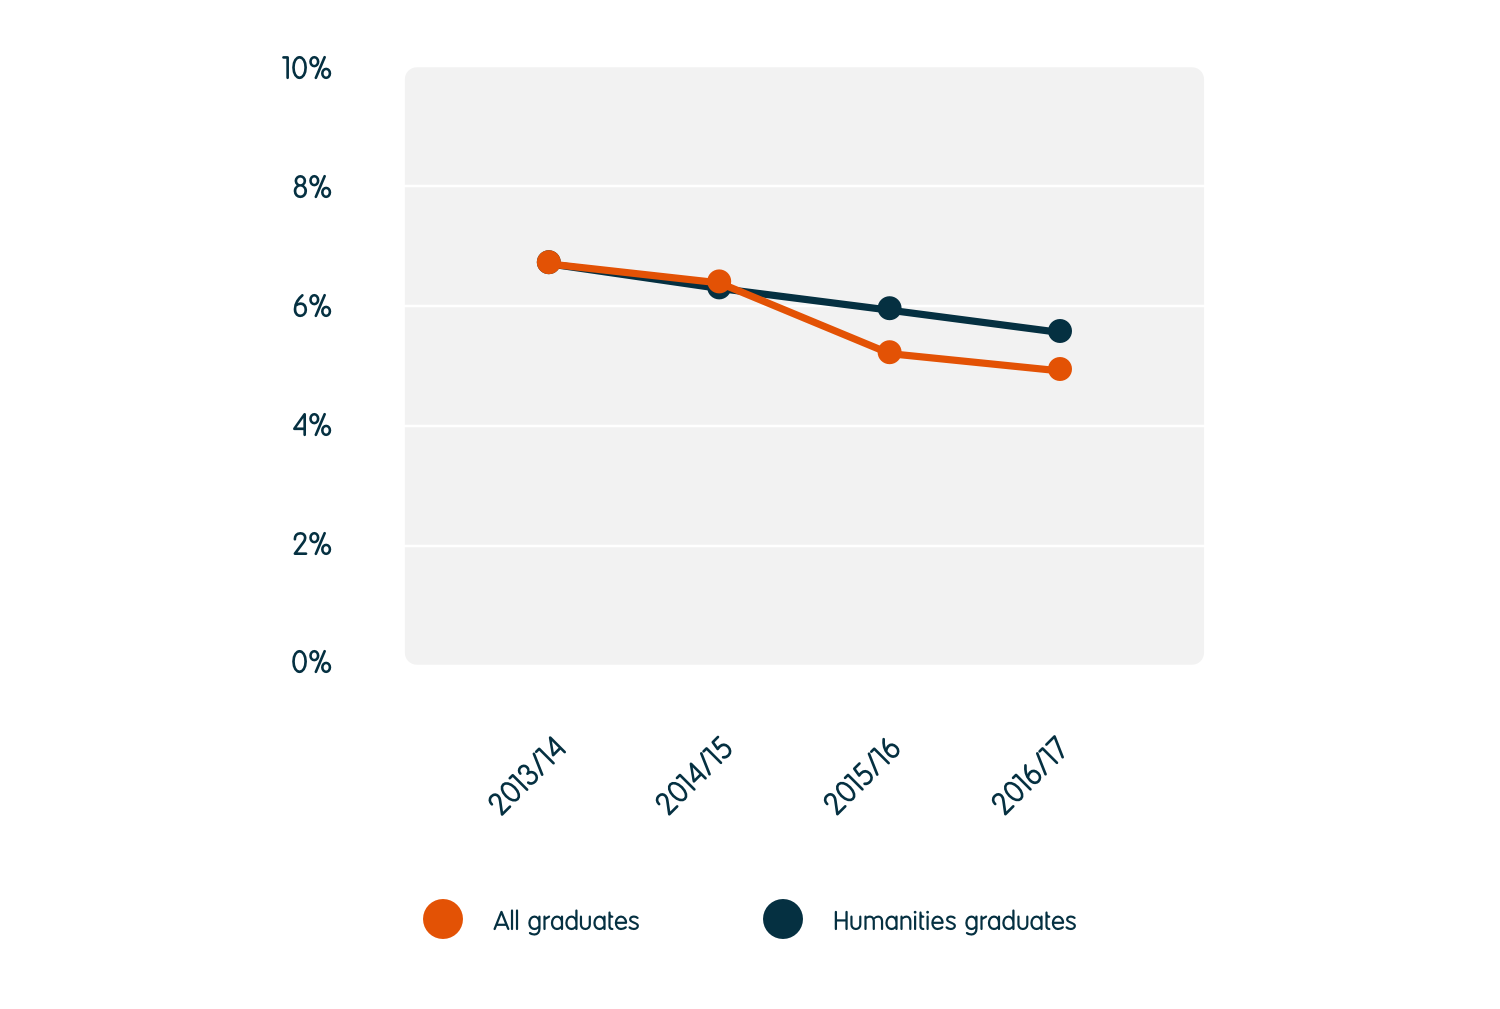 The unemployment rate for humanities graduates reduced from 6.6% in 2013/14 to 5.7% in 2016/17. This is higher than the 5.1% unemployment rate for all graduates.